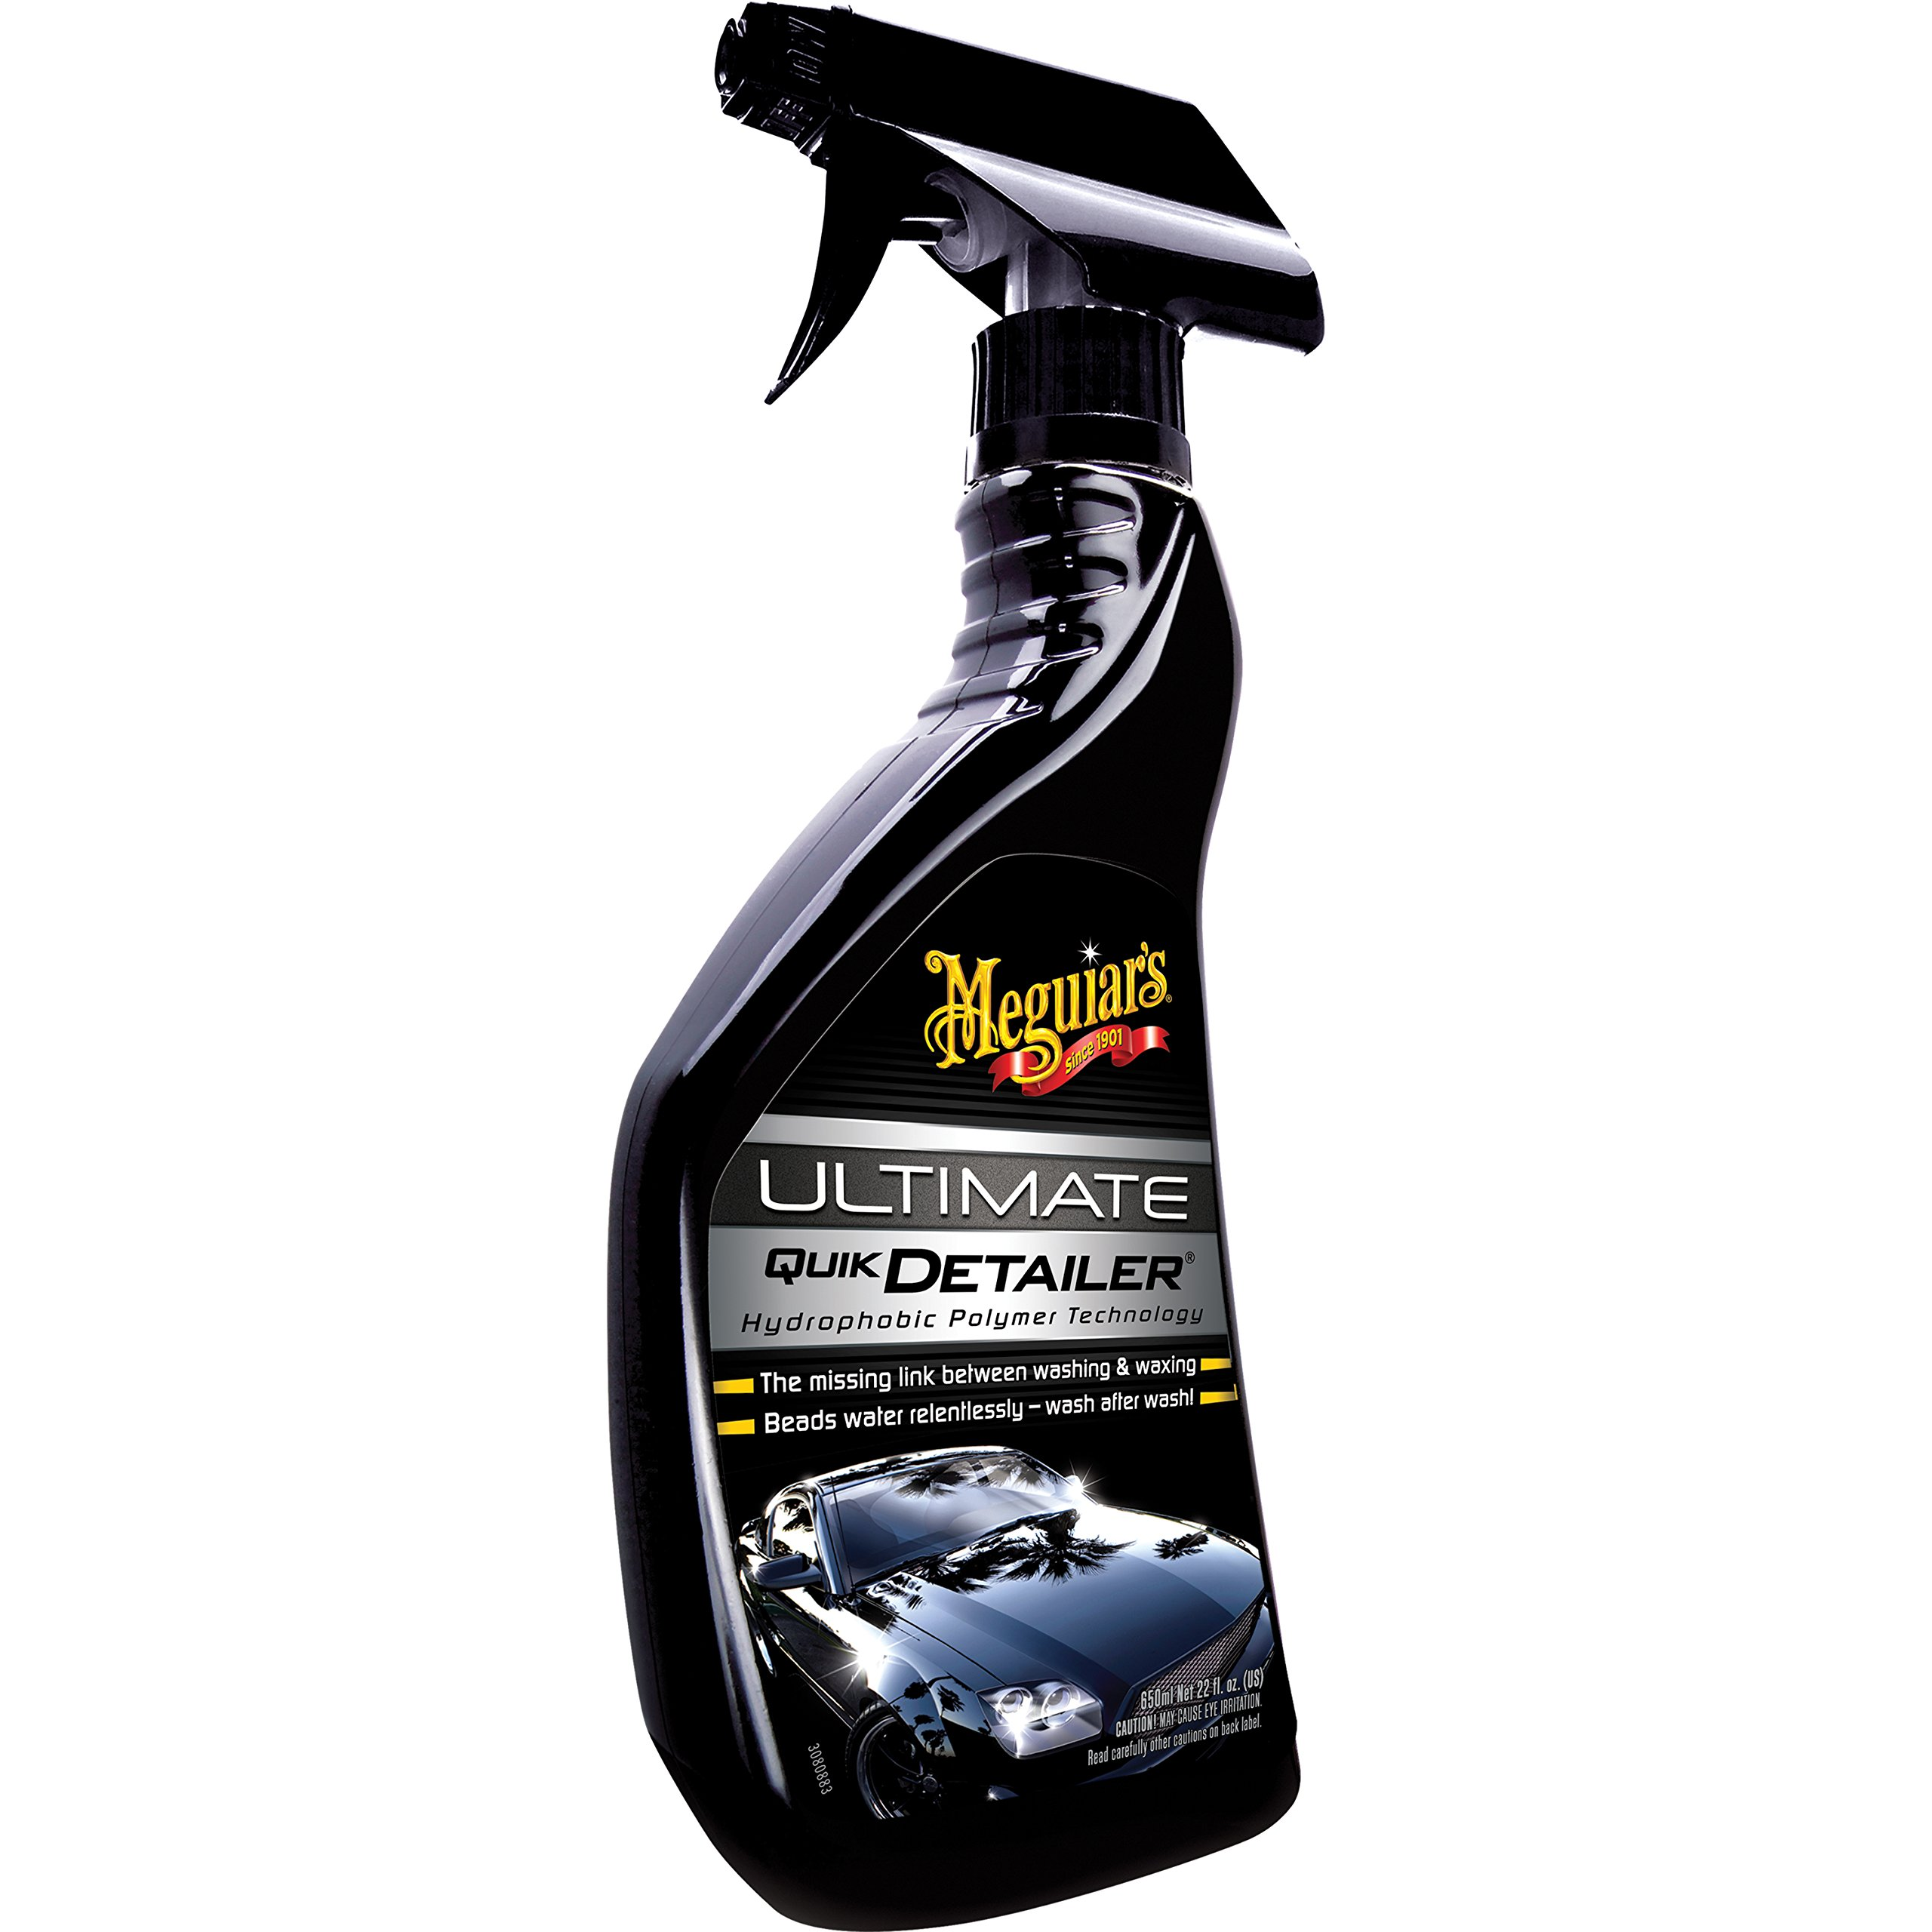 meguiars-g14422-ultimate-quik-detailer-22-oz-best-car-clean-wash-products-reviews